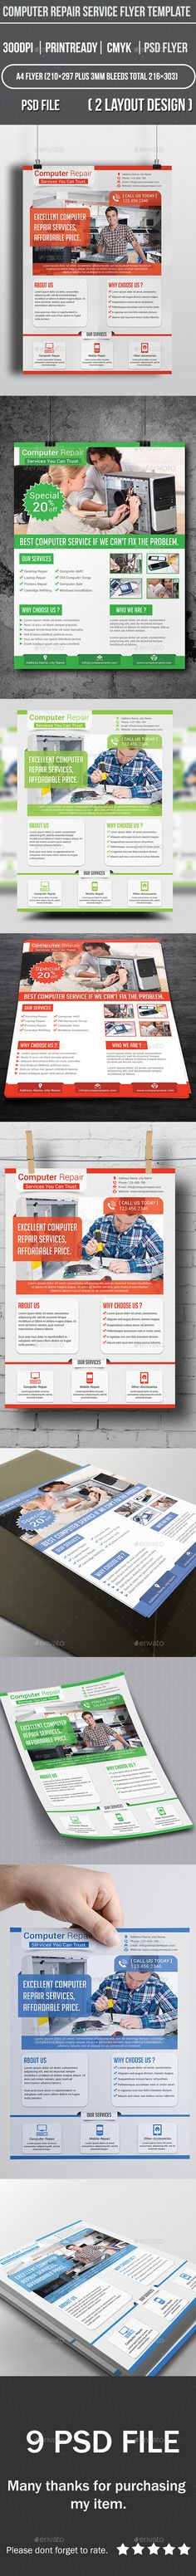 Computer Repair Service Flyer Template | Computer Repair Services